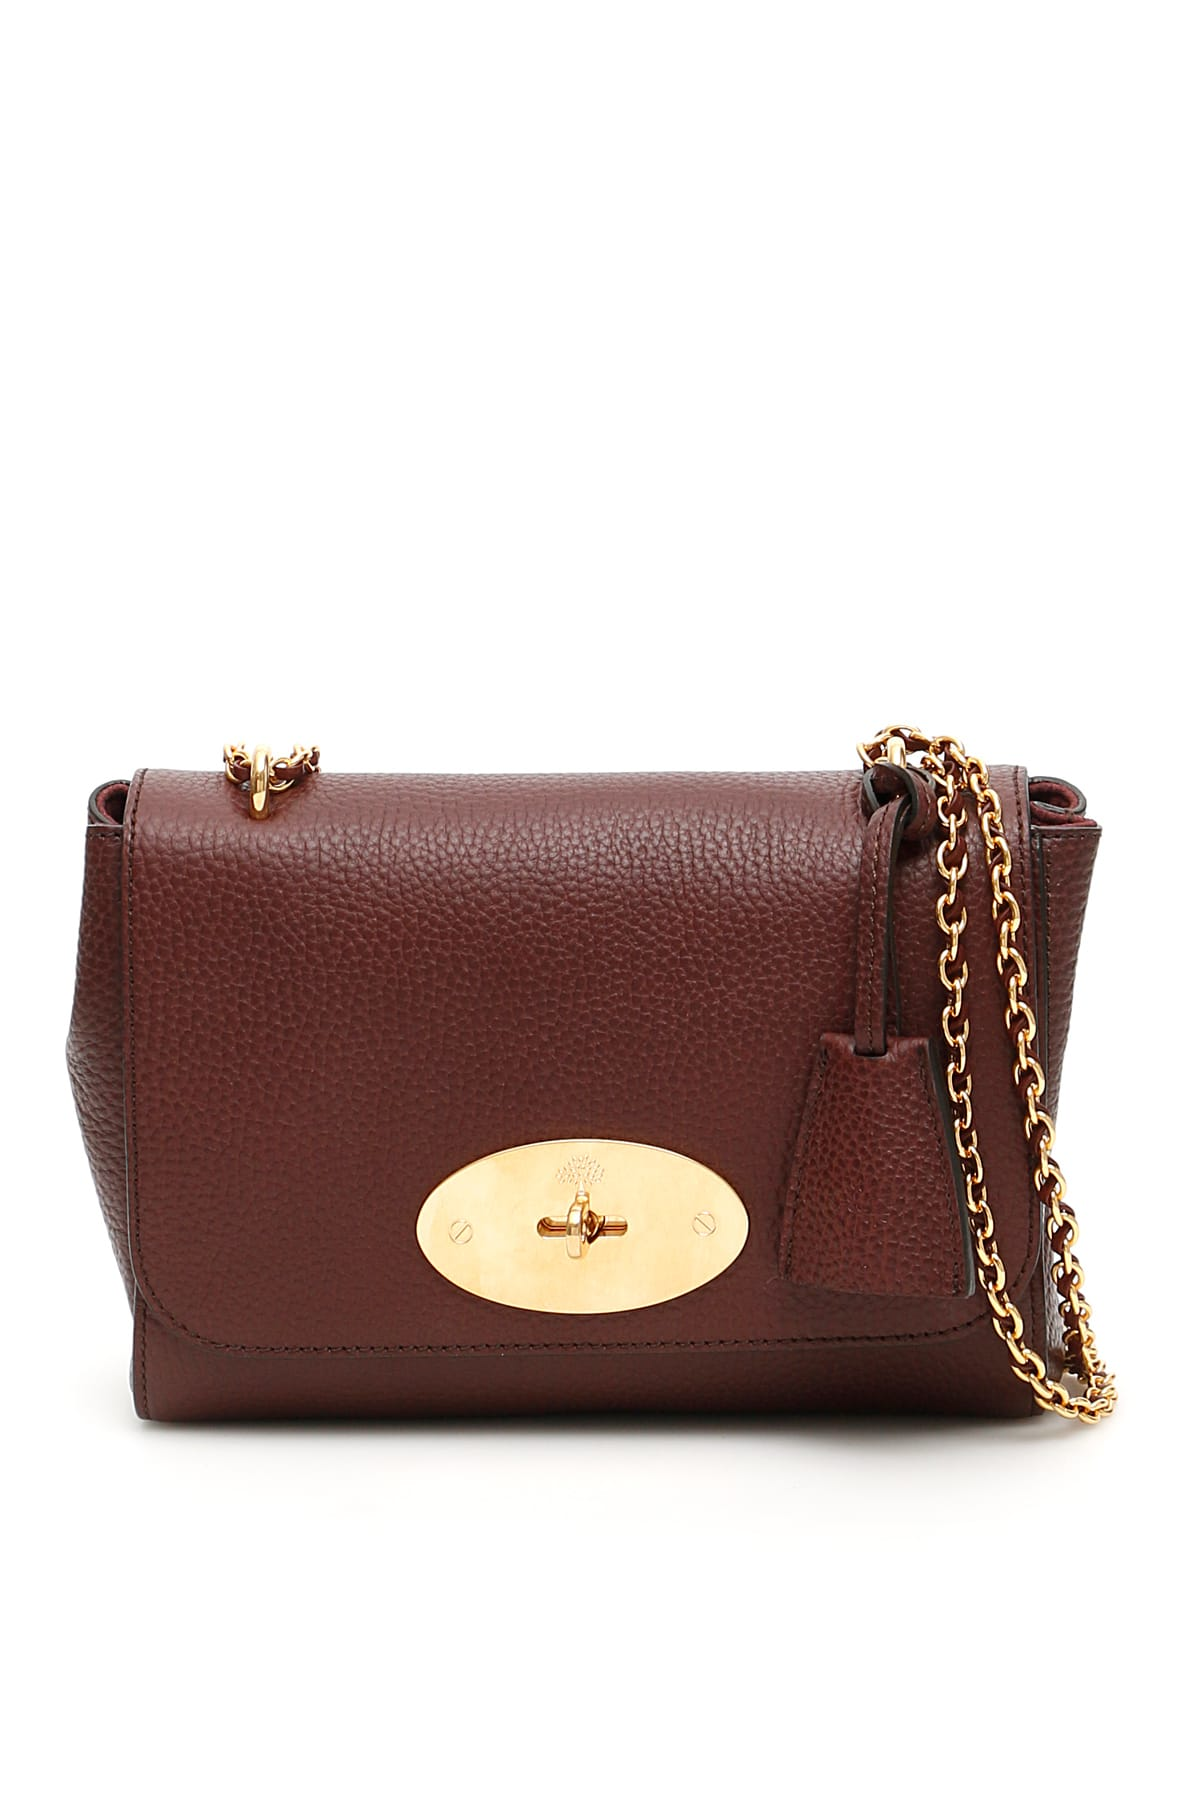 Mulberry Small Lily Bag